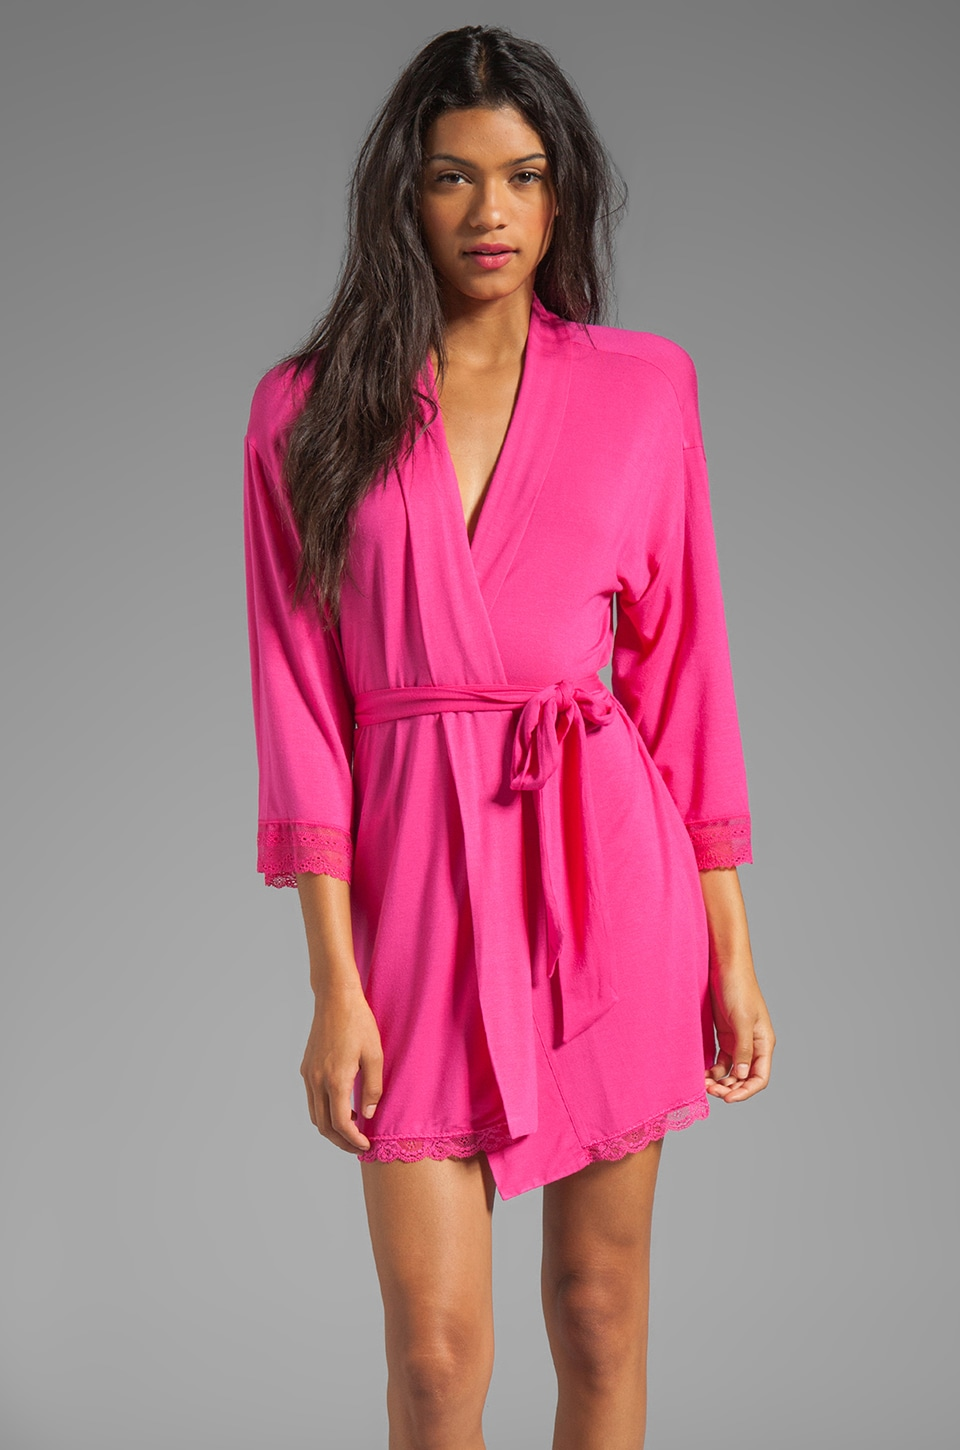 Juicy Couture Sleep Essential Robe in Lychee